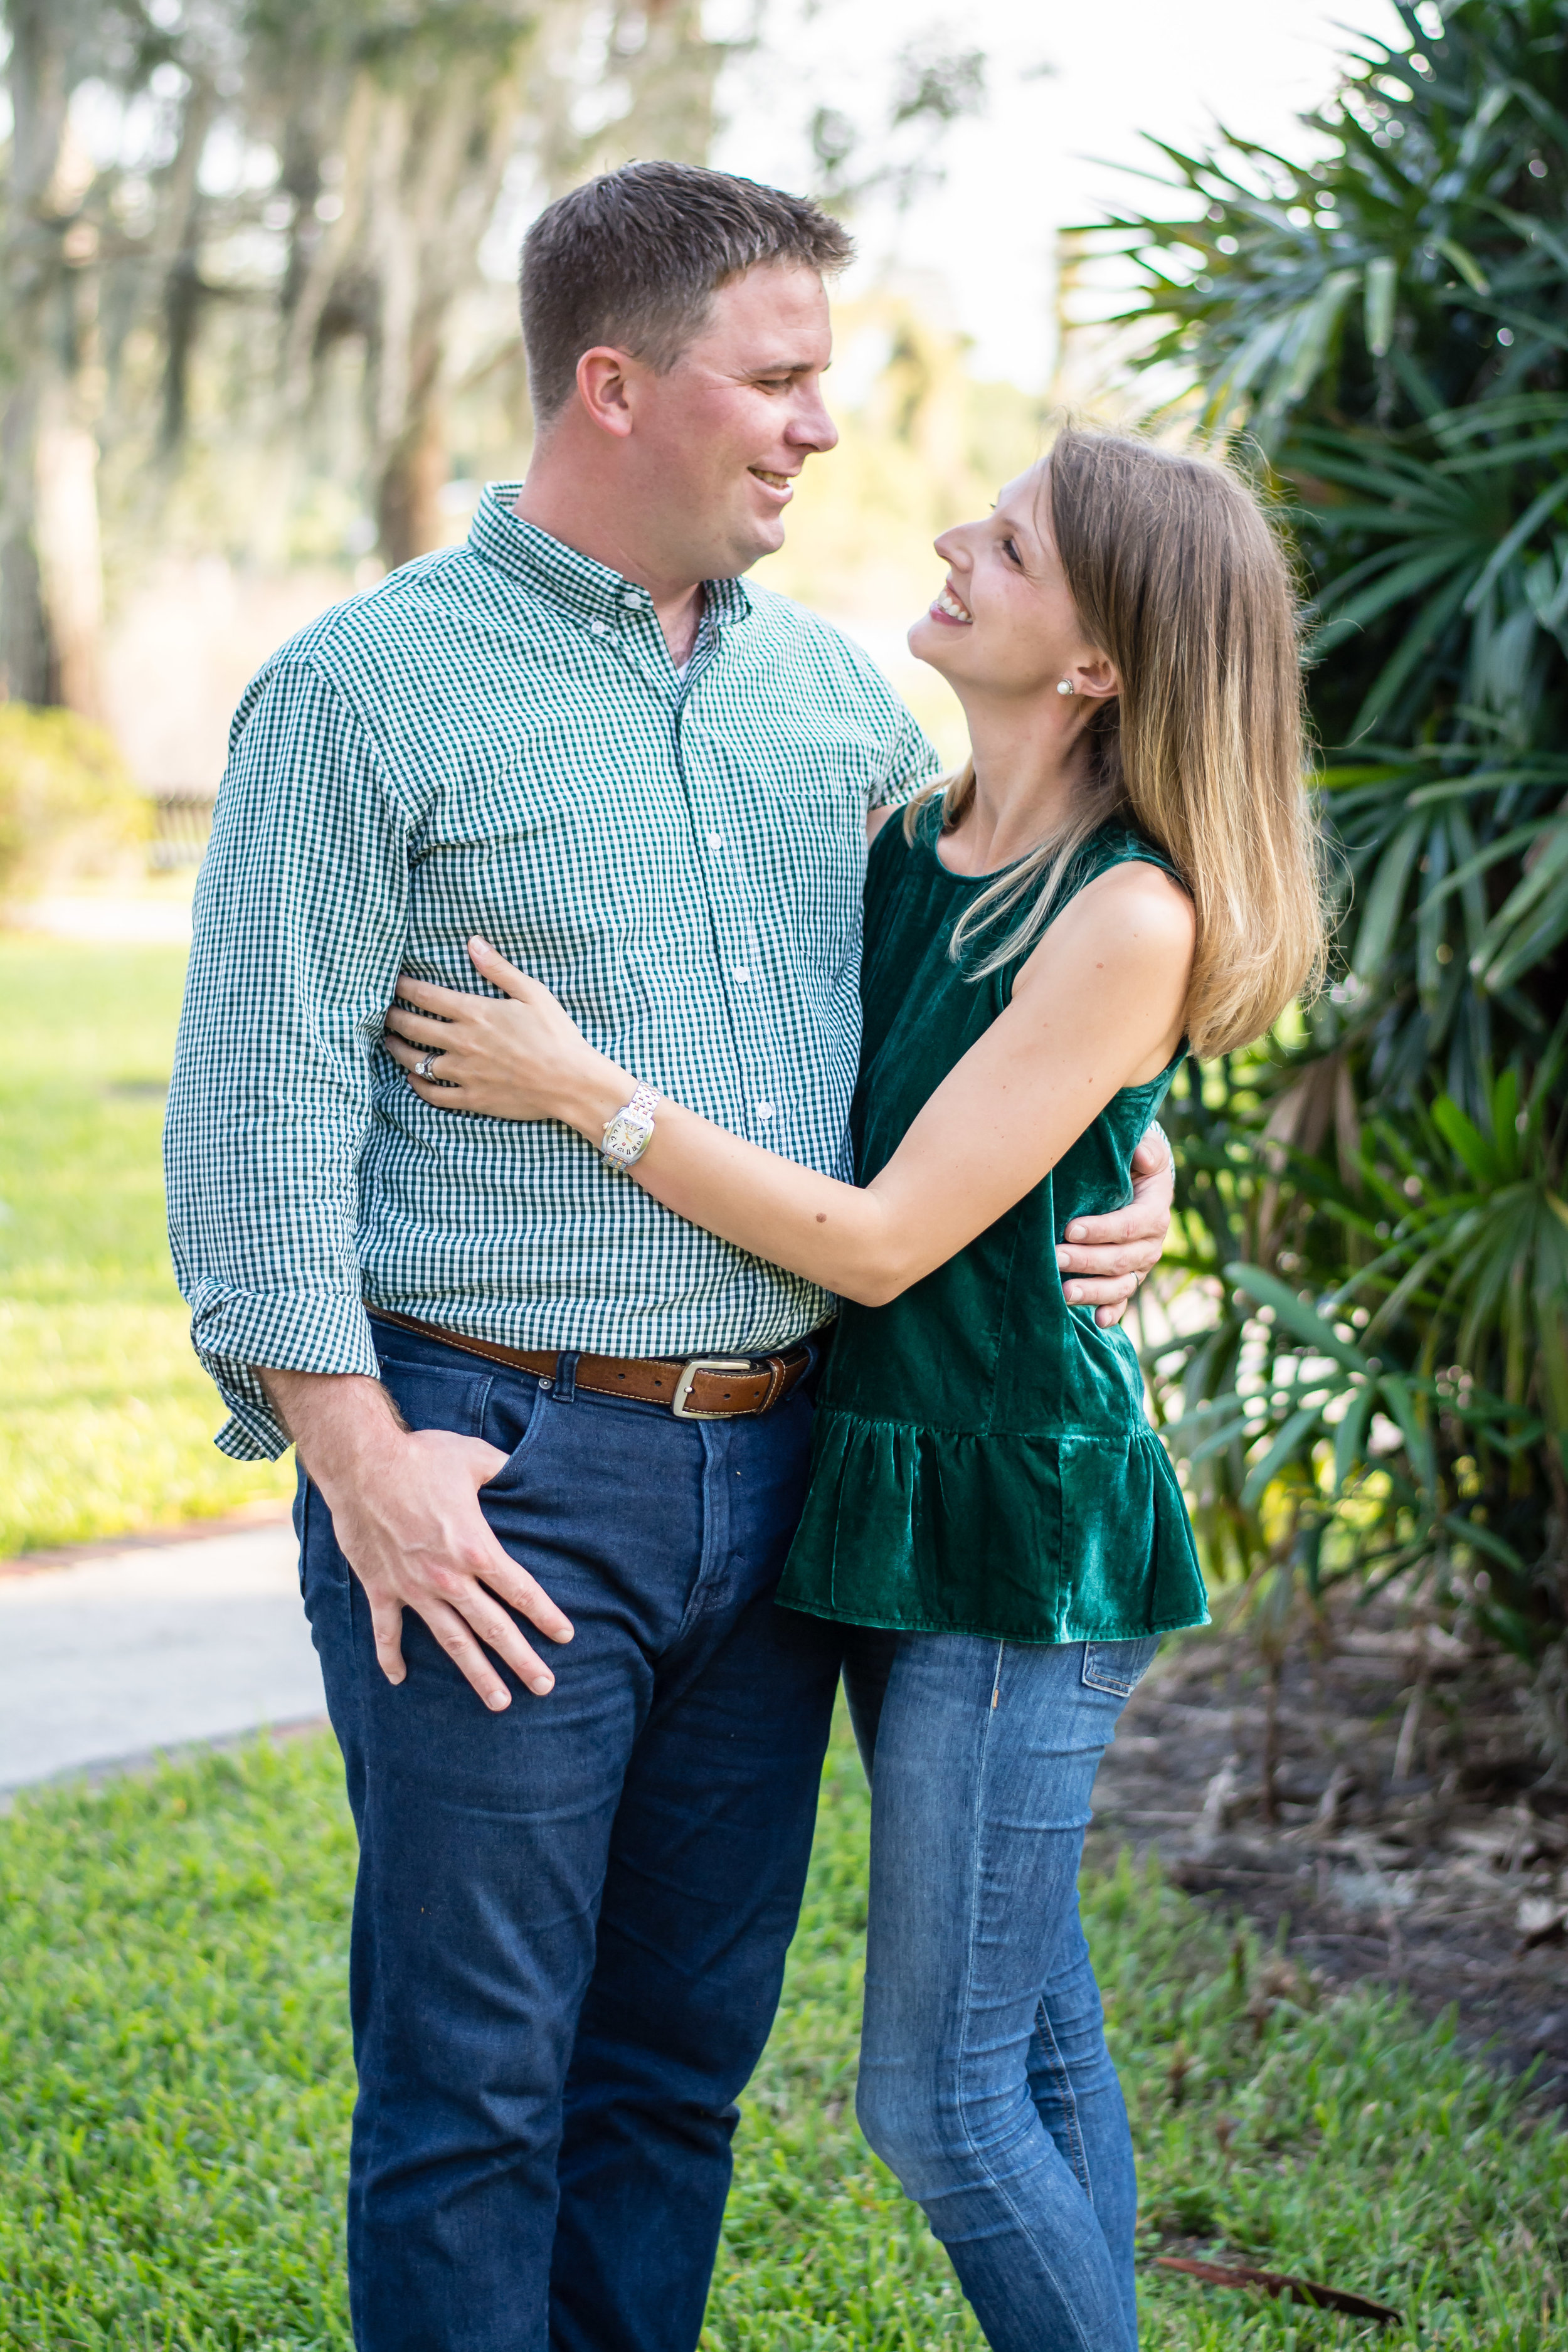 cypress-grove-park-family-session-orlando-photographer-20.jpg